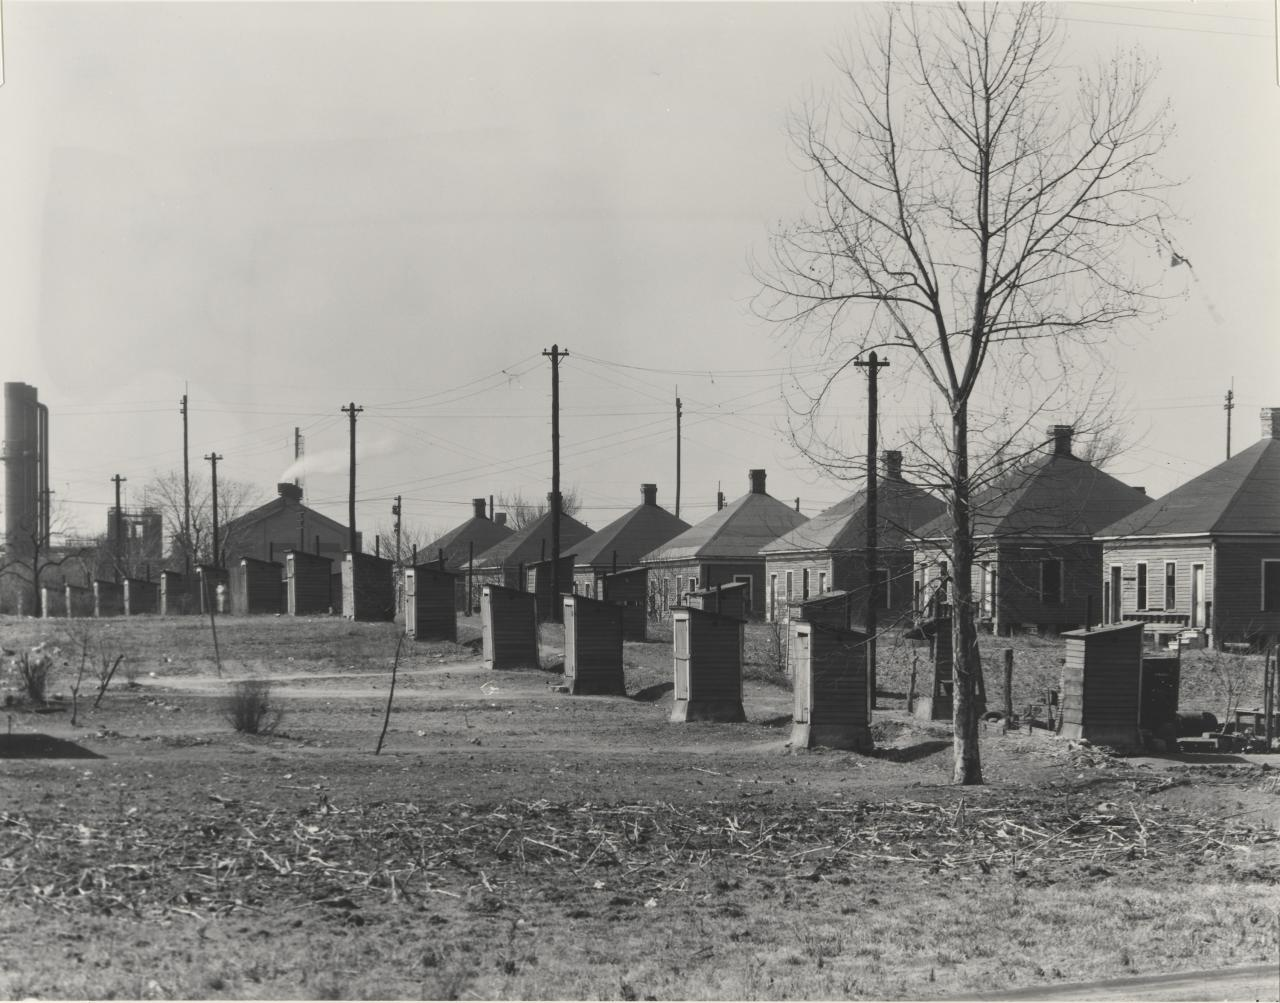 Company houses for steel mill workers, Birmingham, Alabama